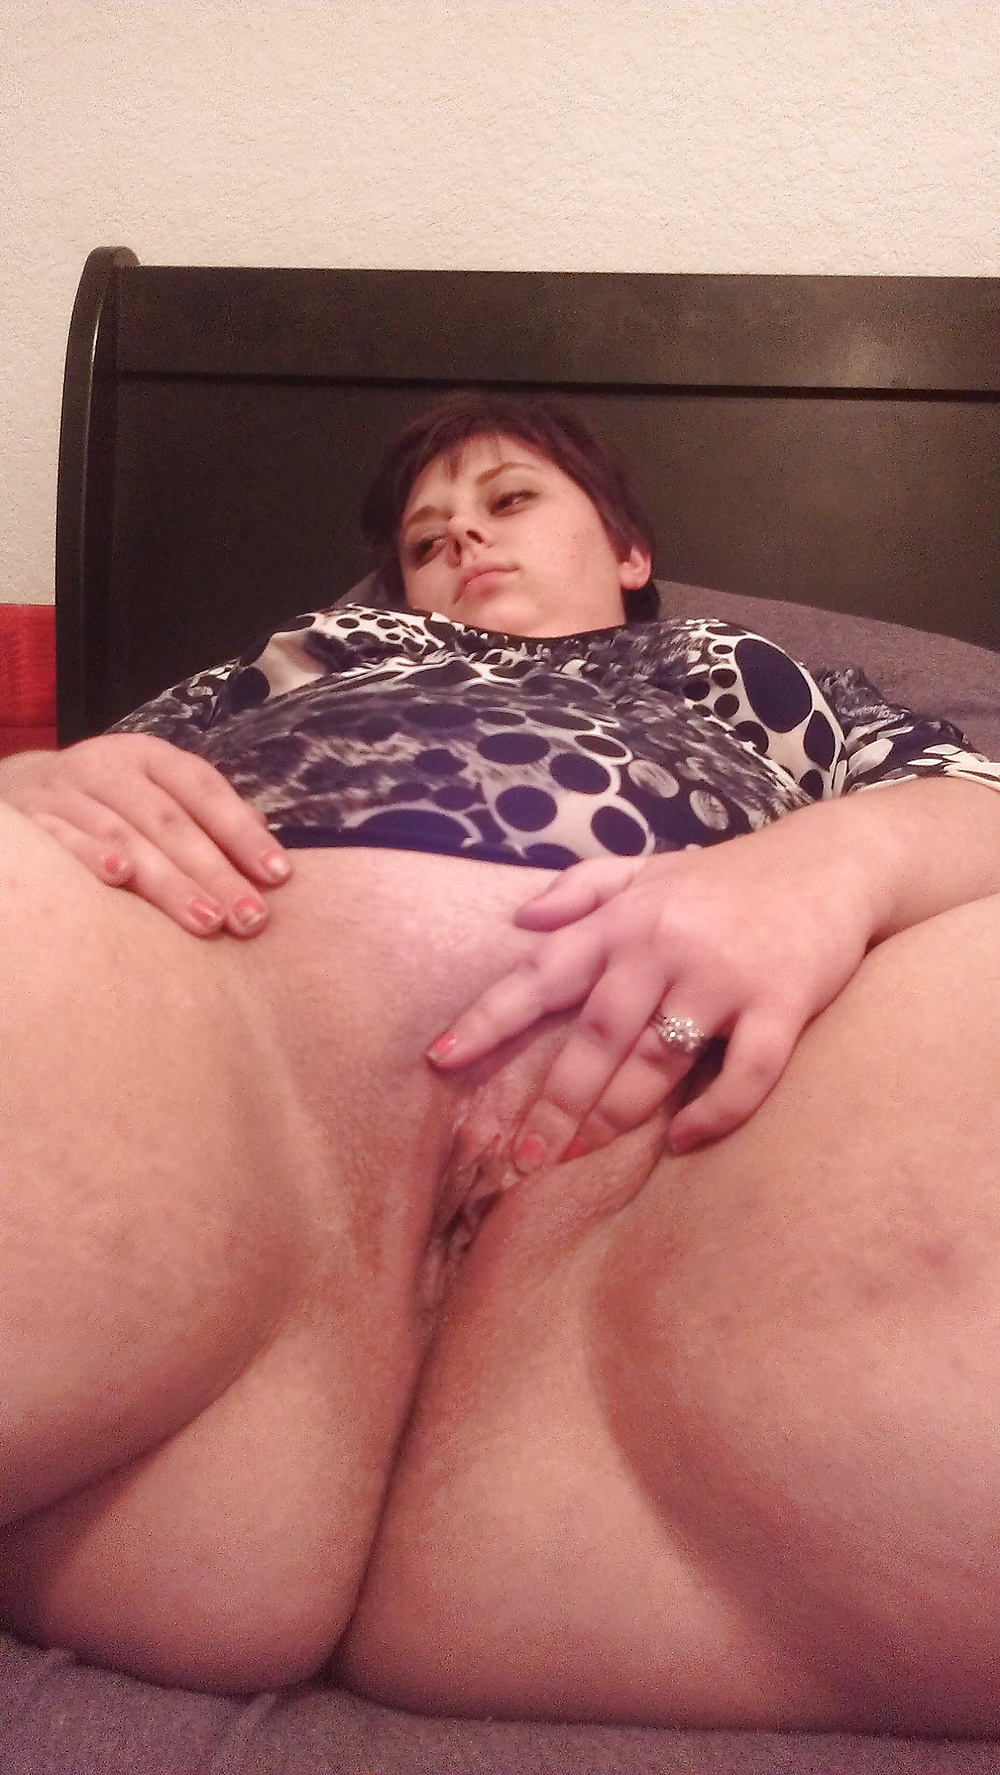 Sex with my wife pics-3940